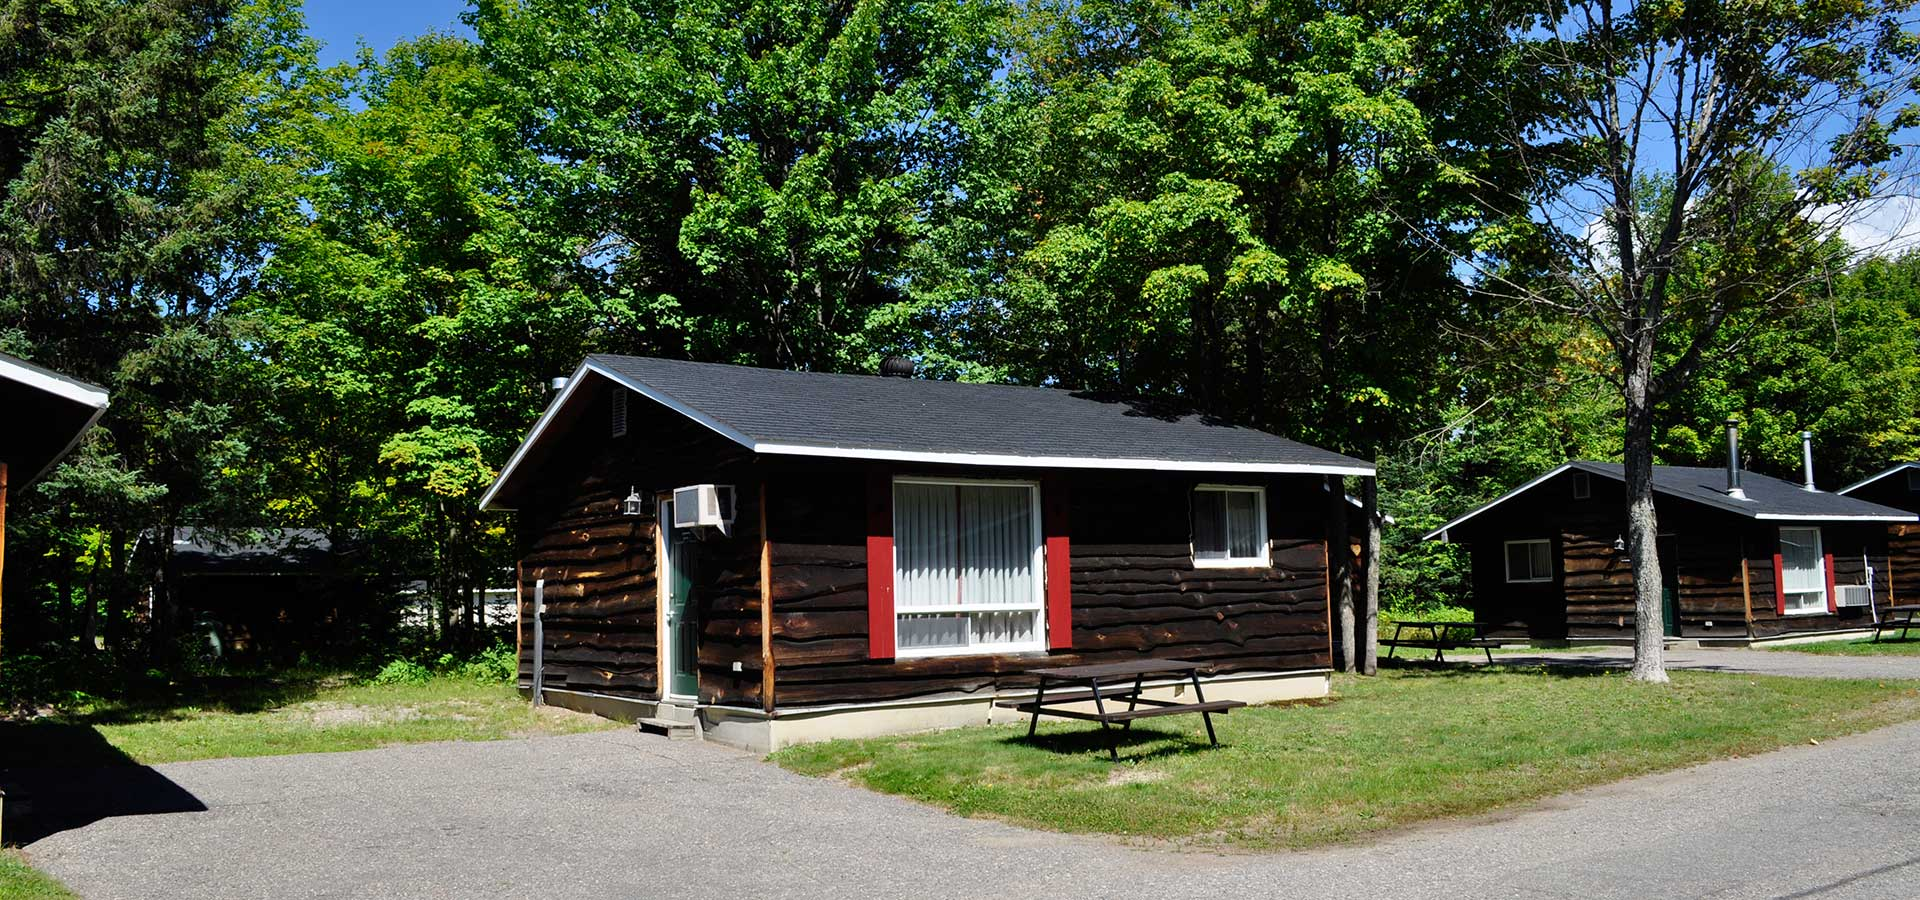 Contact Info Glenview Cottages Amp Campground Sault Ste Marie